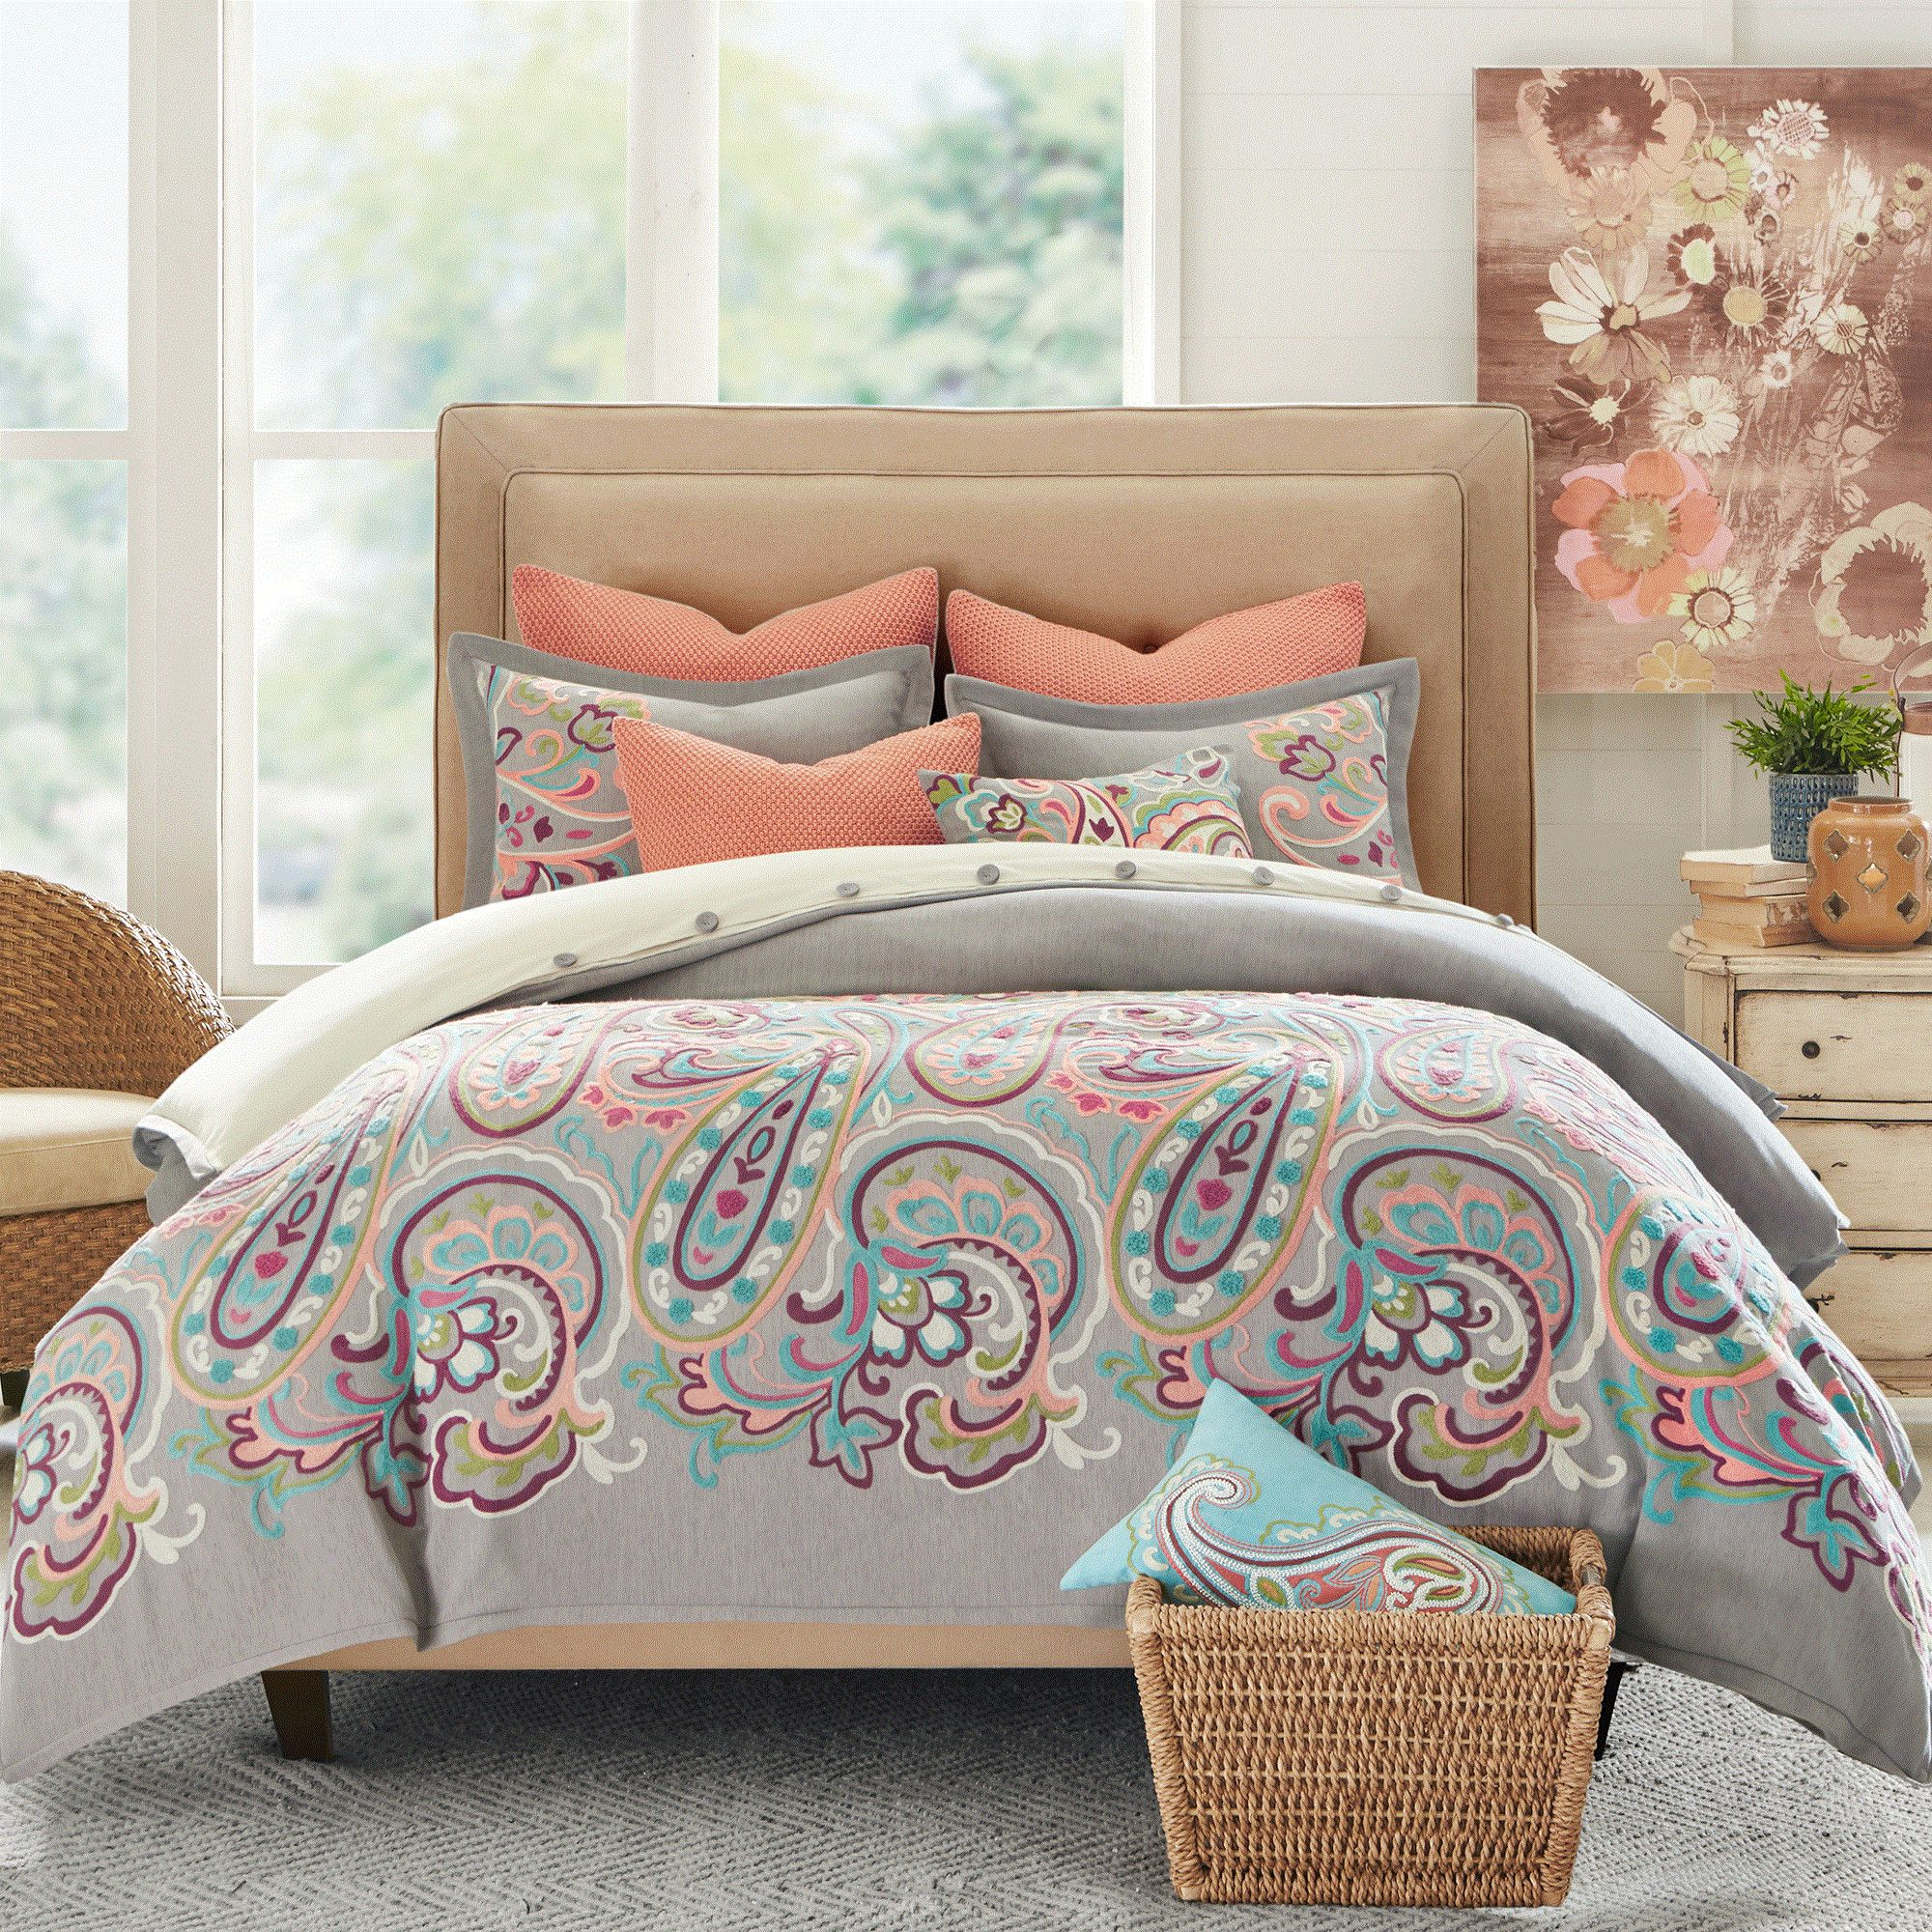 Bedding jardin collection bedding collections bed amp bath macy s - Hampton Hill Persian Paisley Comforter Set